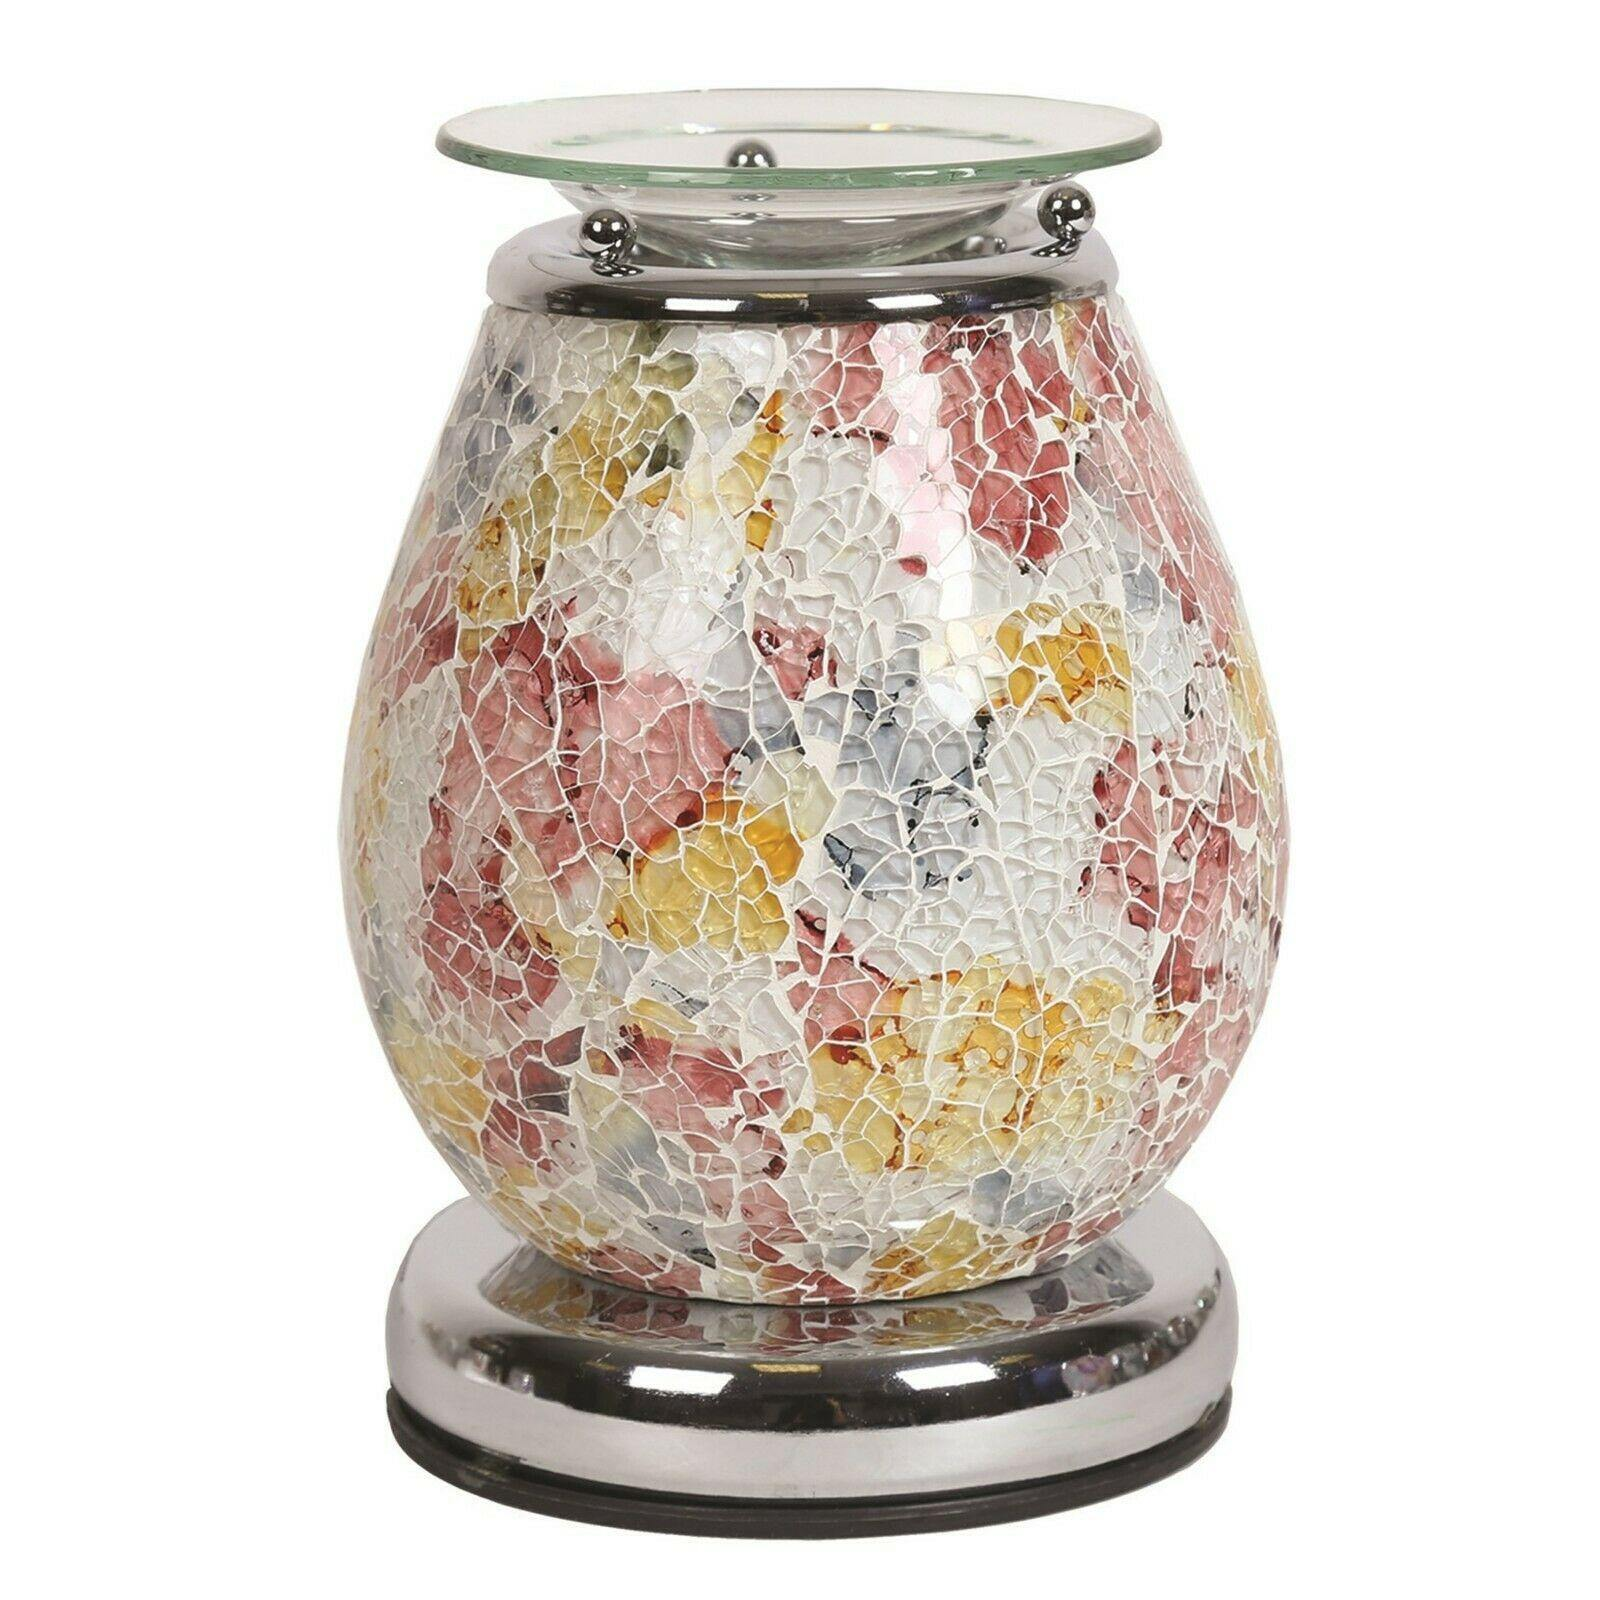 Aroma Accessories Minerva Mosaic Touch Electric Wax Melt Warmer - TOSYS Candles and Gifts